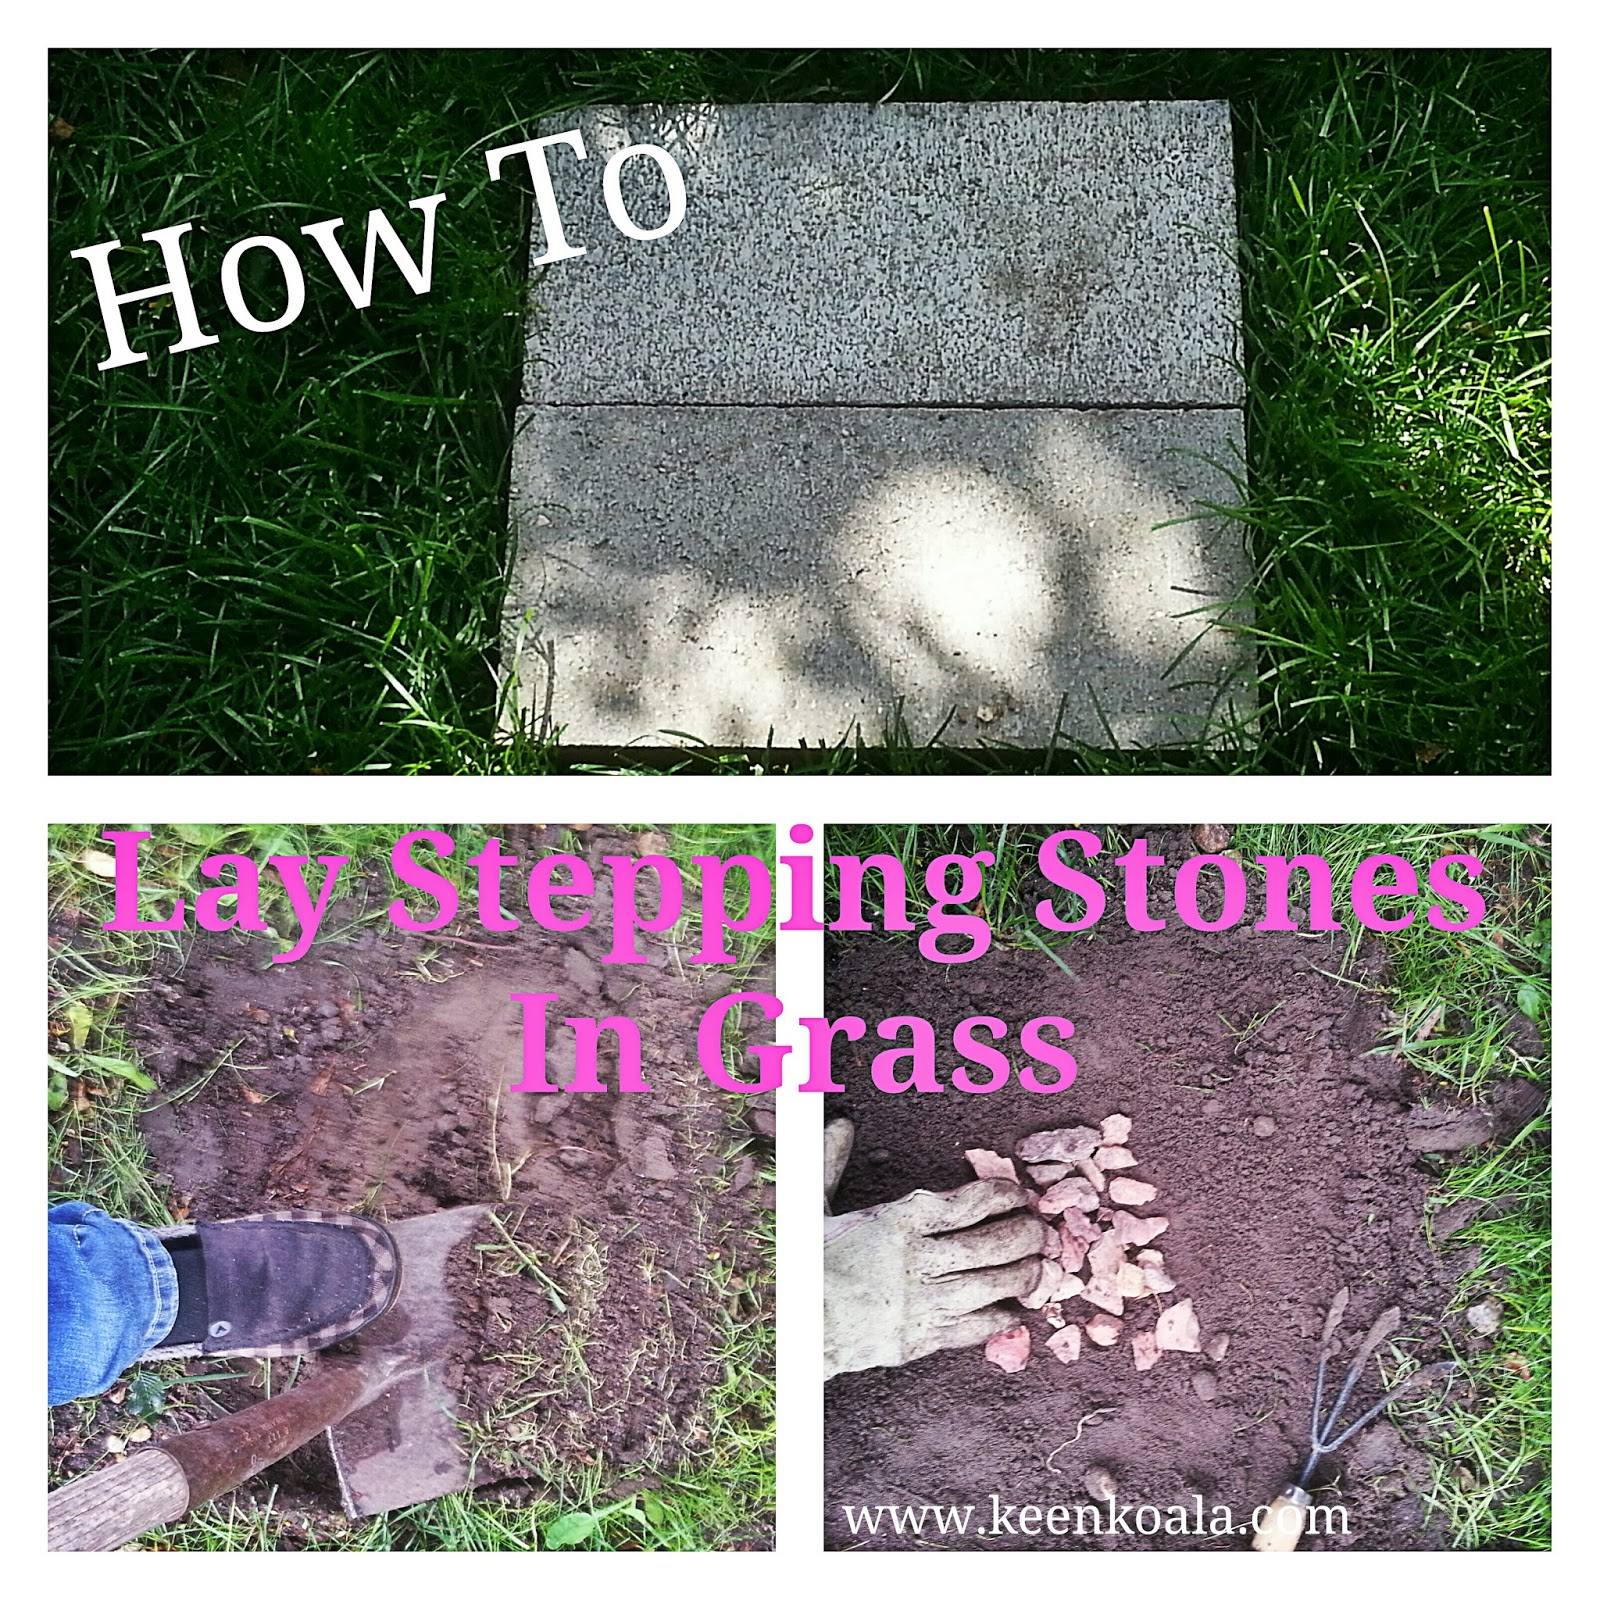 Well I Hope This Inspires You To Get Out And Put A Pretty Trail Of Stepping Stones In Your Lawn Have Ever Laid Pavers Gr